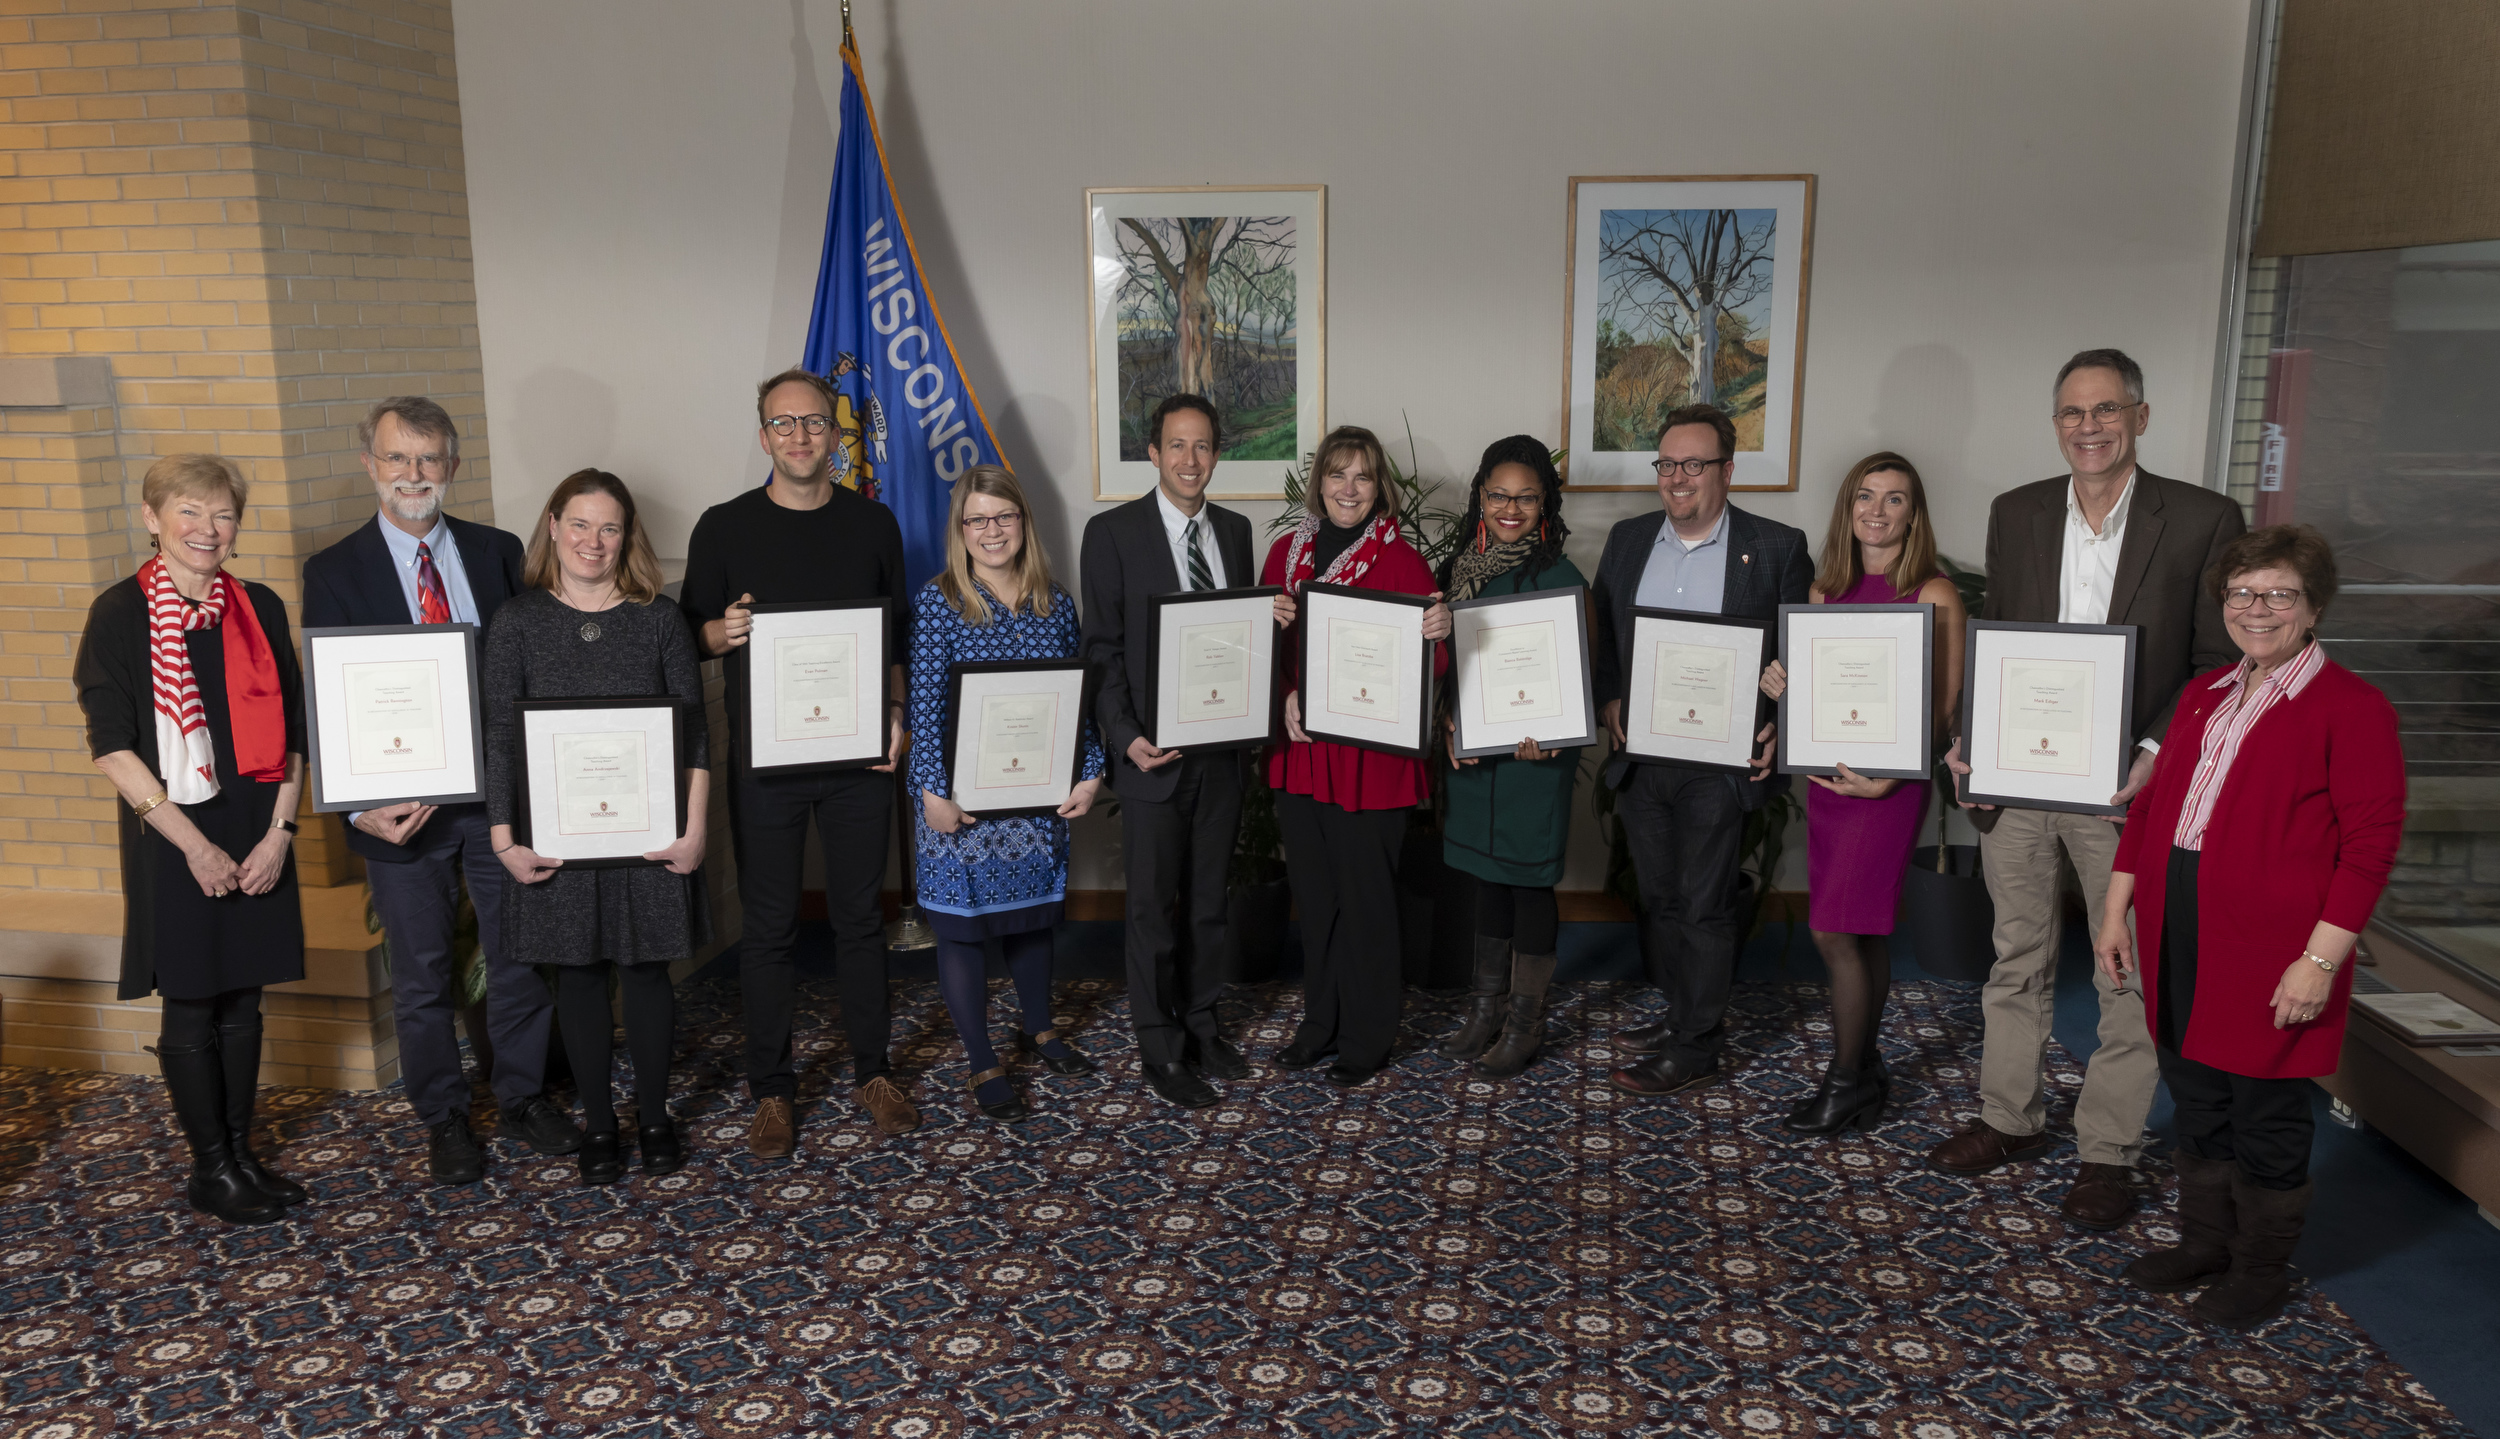 Photo of 2019 DTA award recipients with Provost and Chancellor